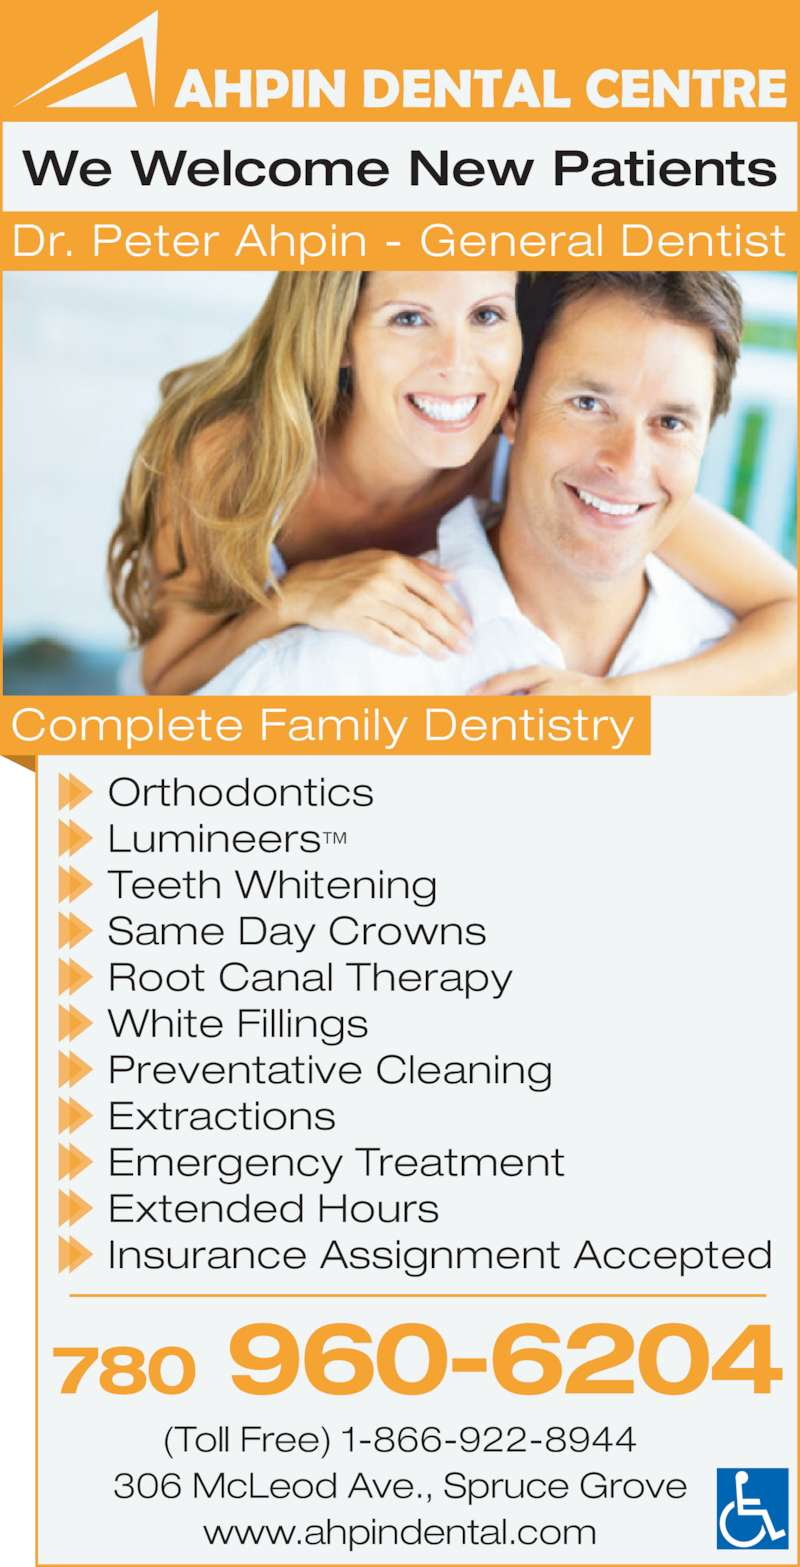 Ahpin Dental Centre (780-962-3414) - Display Ad - 780 960-6204 (Toll Free) 1-866-922-8944 306 McLeod Ave., Spruce Grove www.ahpindental.com We Welcome New Patients Orthodontics Lumineers™ Teeth Whitening Same Day Crowns Root Canal Therapy White Fillings Preventative Cleaning Extractions Emergency Treatment Extended Hours Insurance Assignment Accepted Complete Family Dentistry Dr. Peter Ahpin - General Dentist